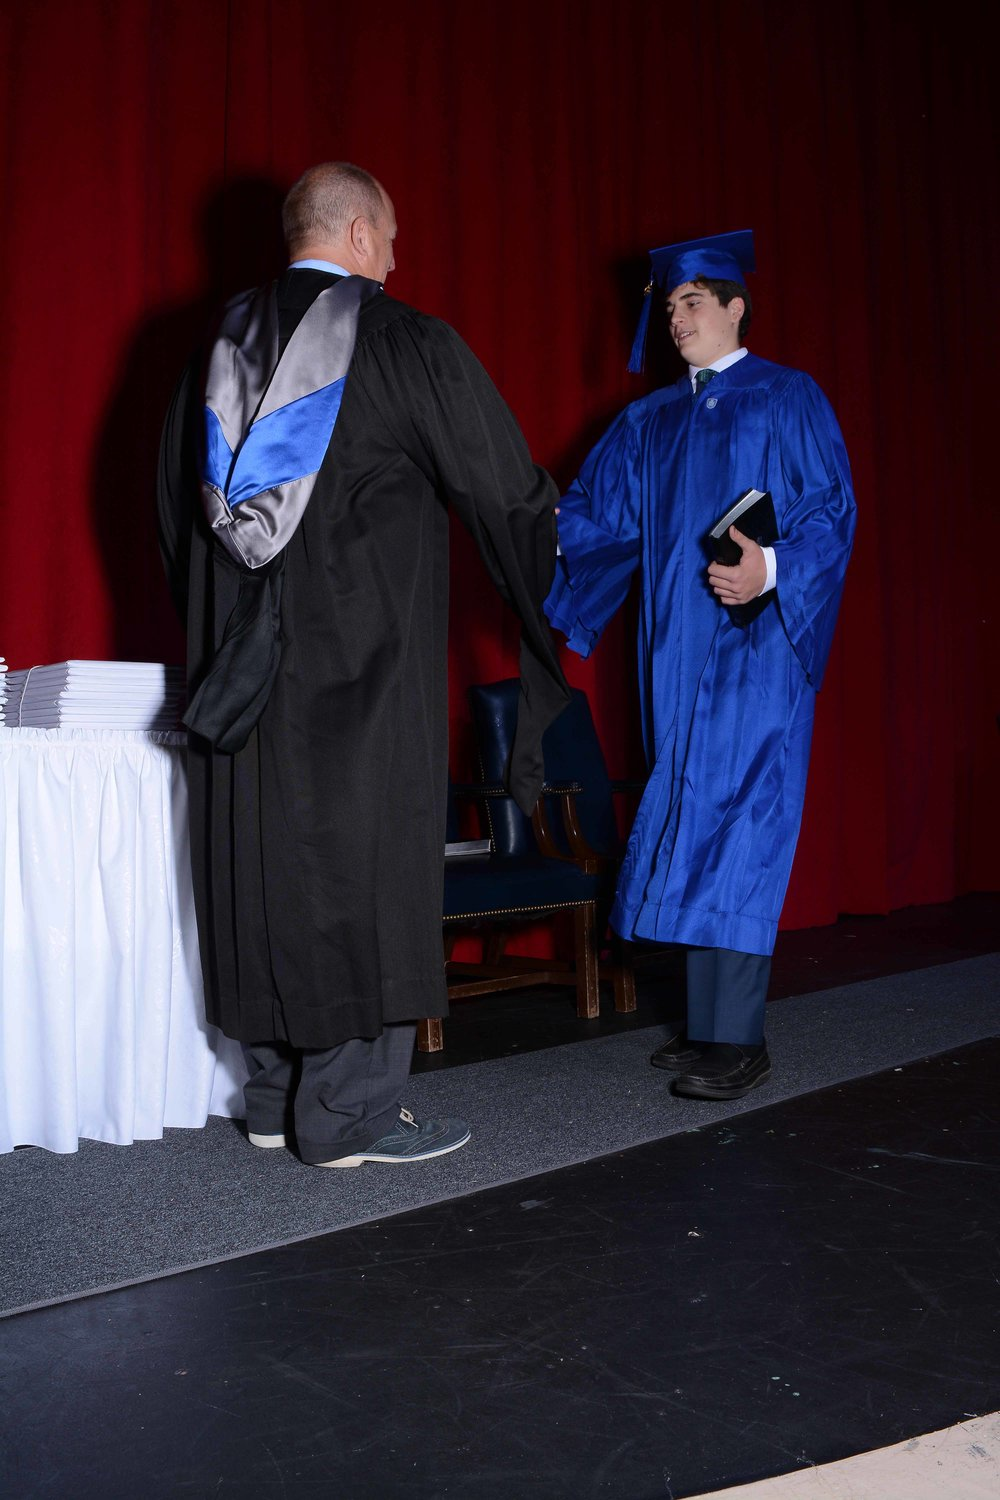 May14 Commencement07.jpg